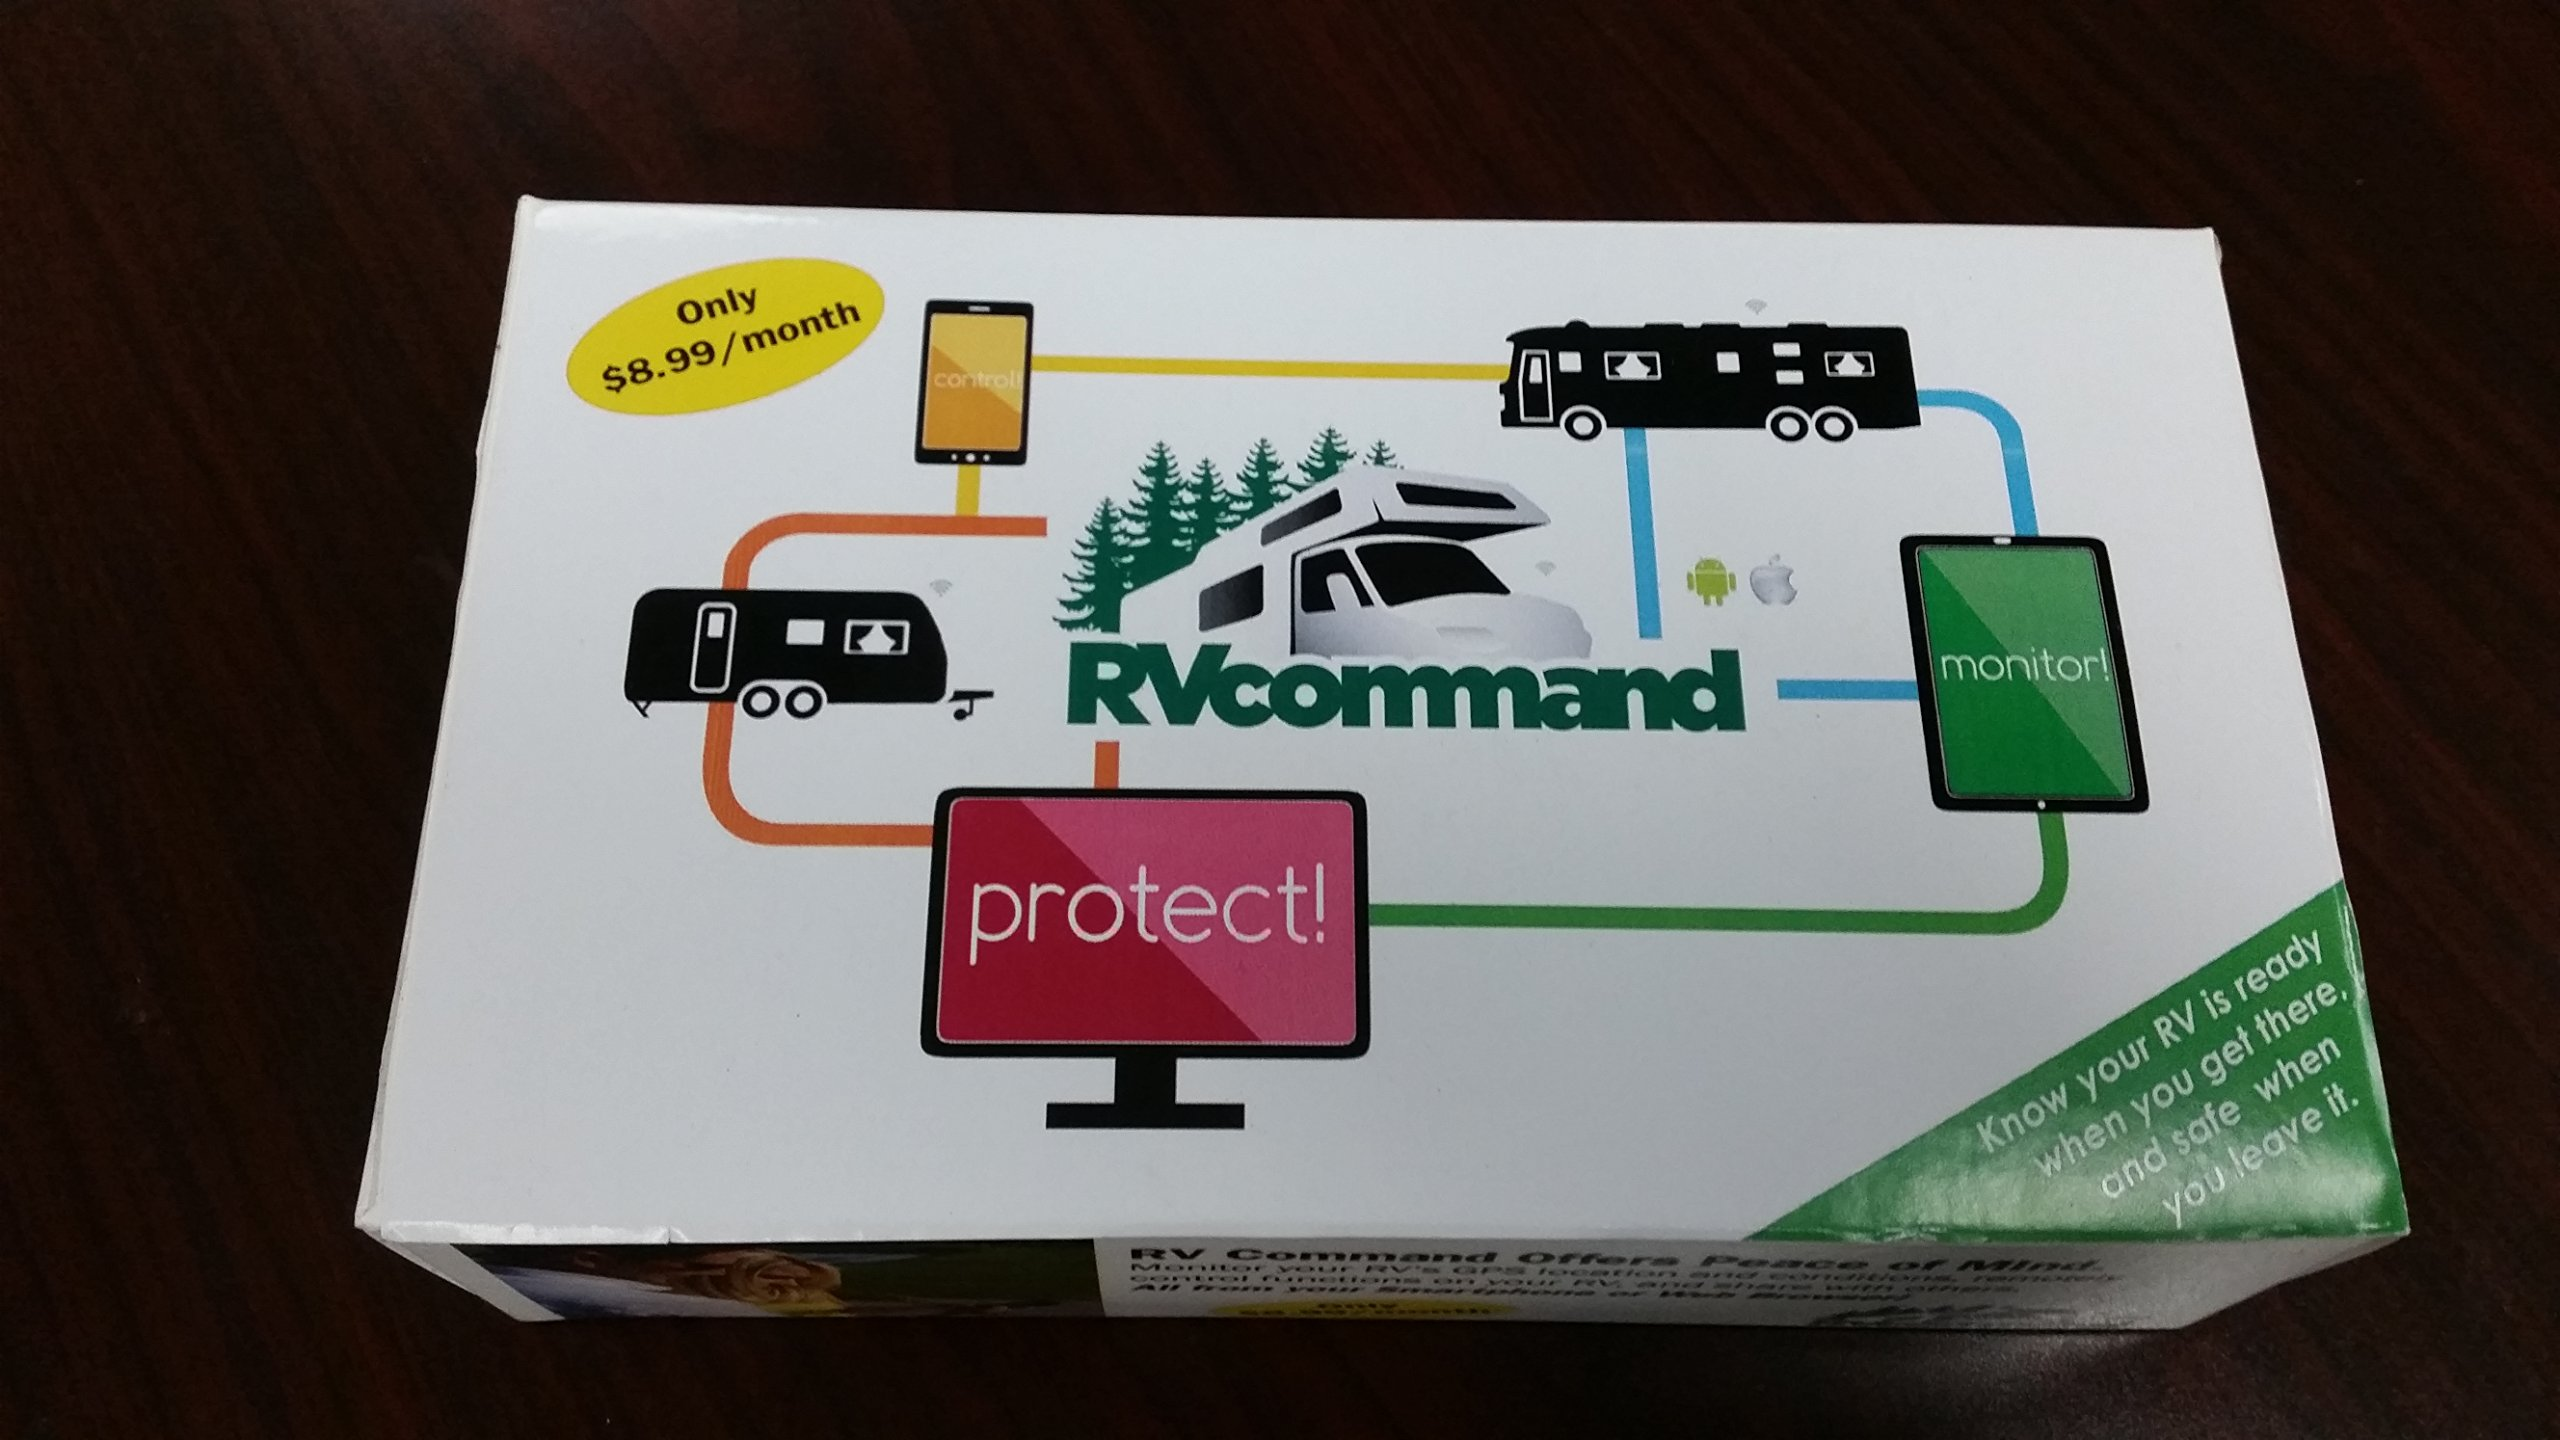 RV Command - Complete New RV GPS Tracking and Monitoring System for Travel Trailer, 5th Wheel, Motorhome, Camping Trailer Protection